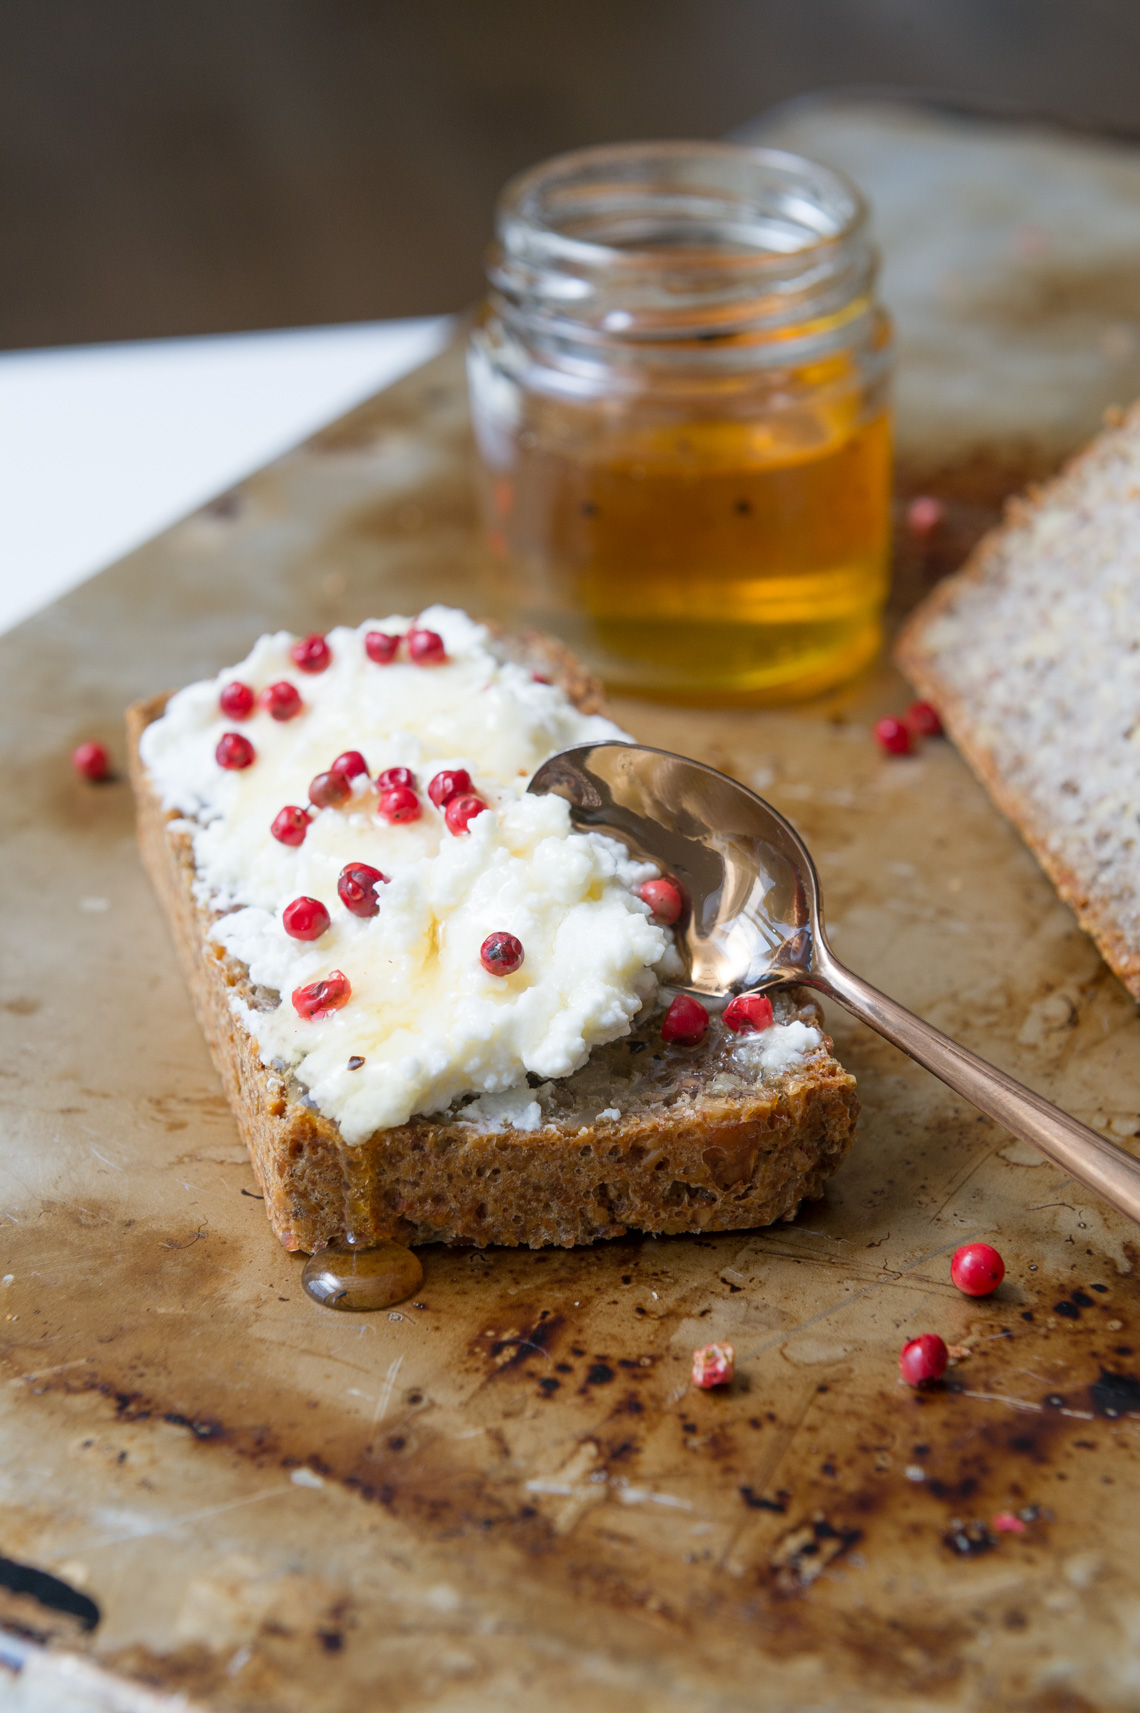 NYC Food Photographer - Seed Bread